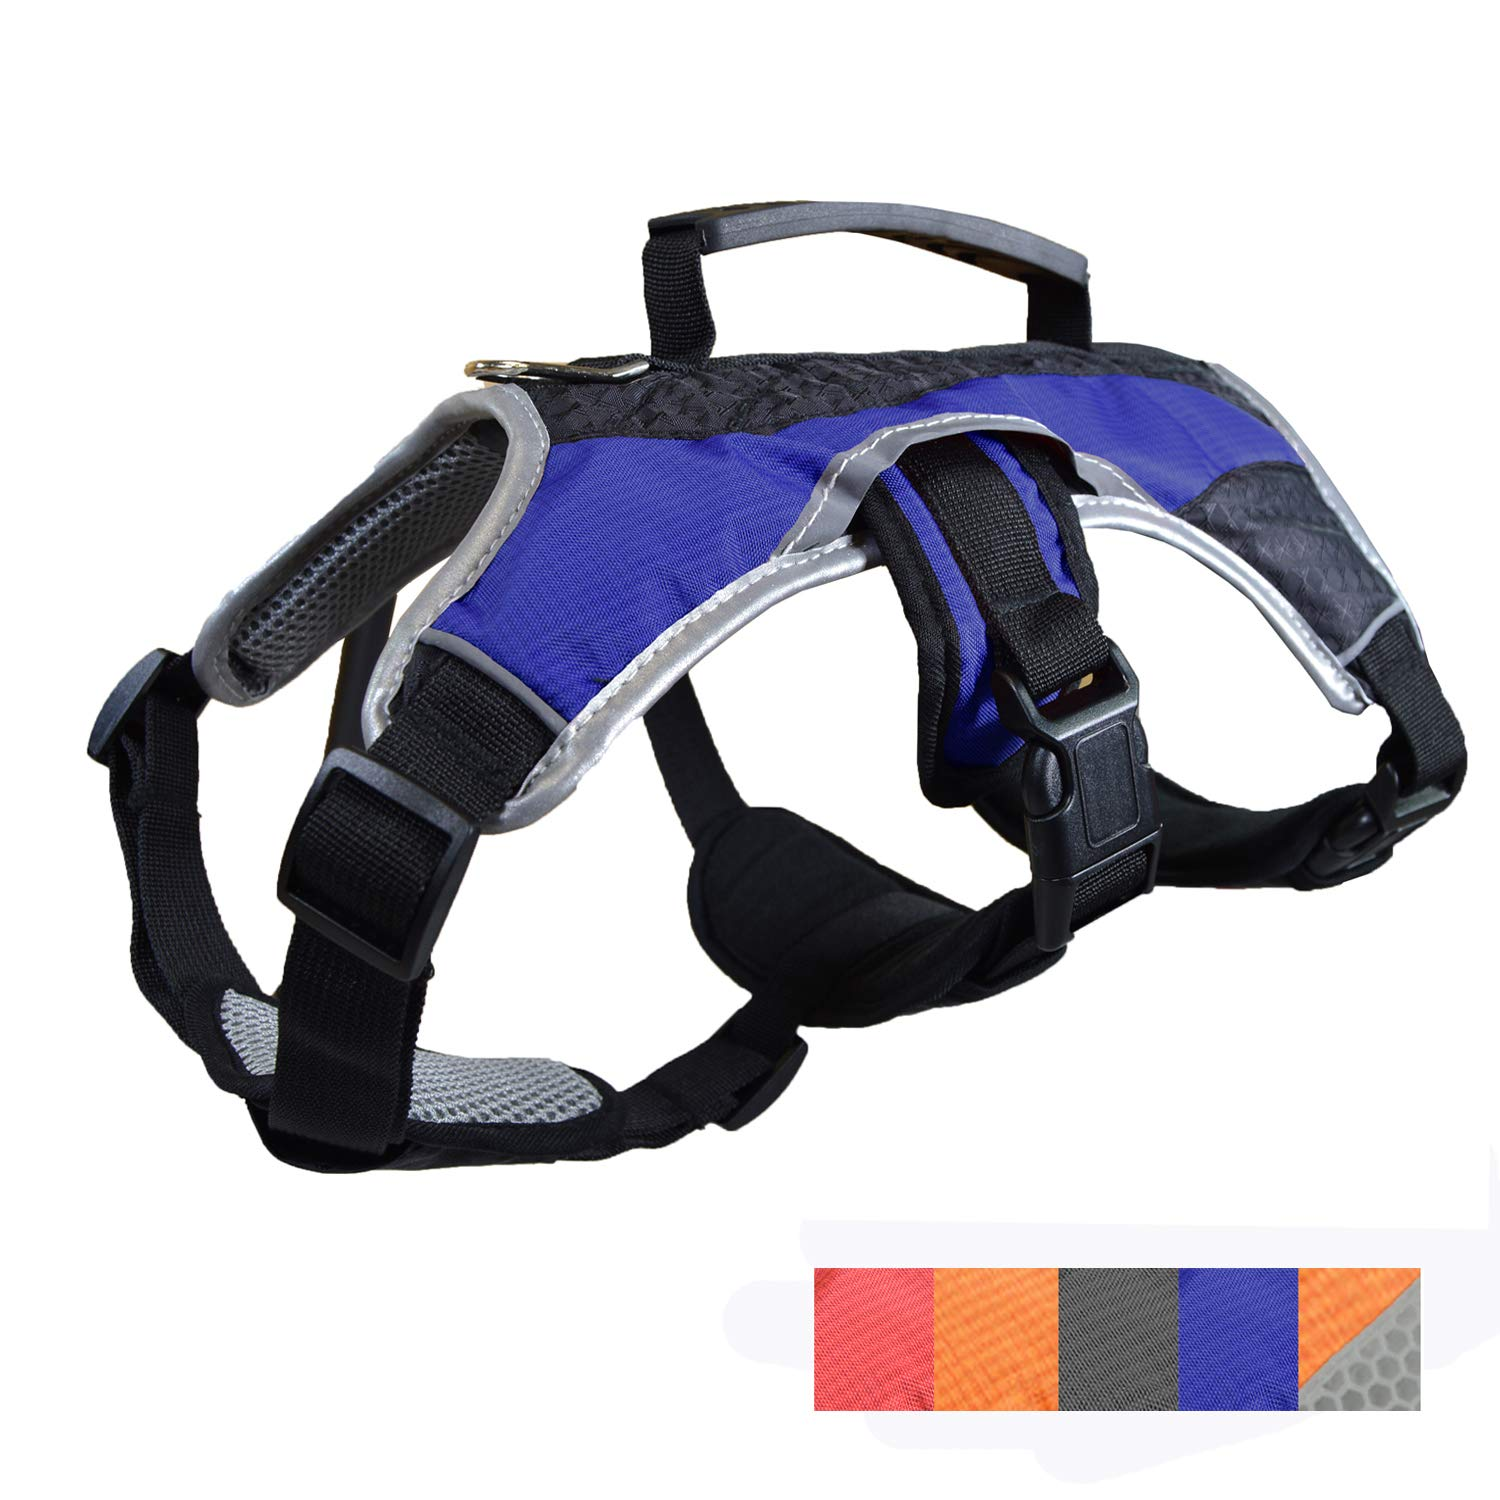 Dog Walking Lifting Carry Harness, Support Mesh Padded Vest, Accessory, Collar, Lightweight, No More Pulling, Tugging or Choking, for Puppies, Small Dogs (Blue, Large), by Downtown Pet Supply